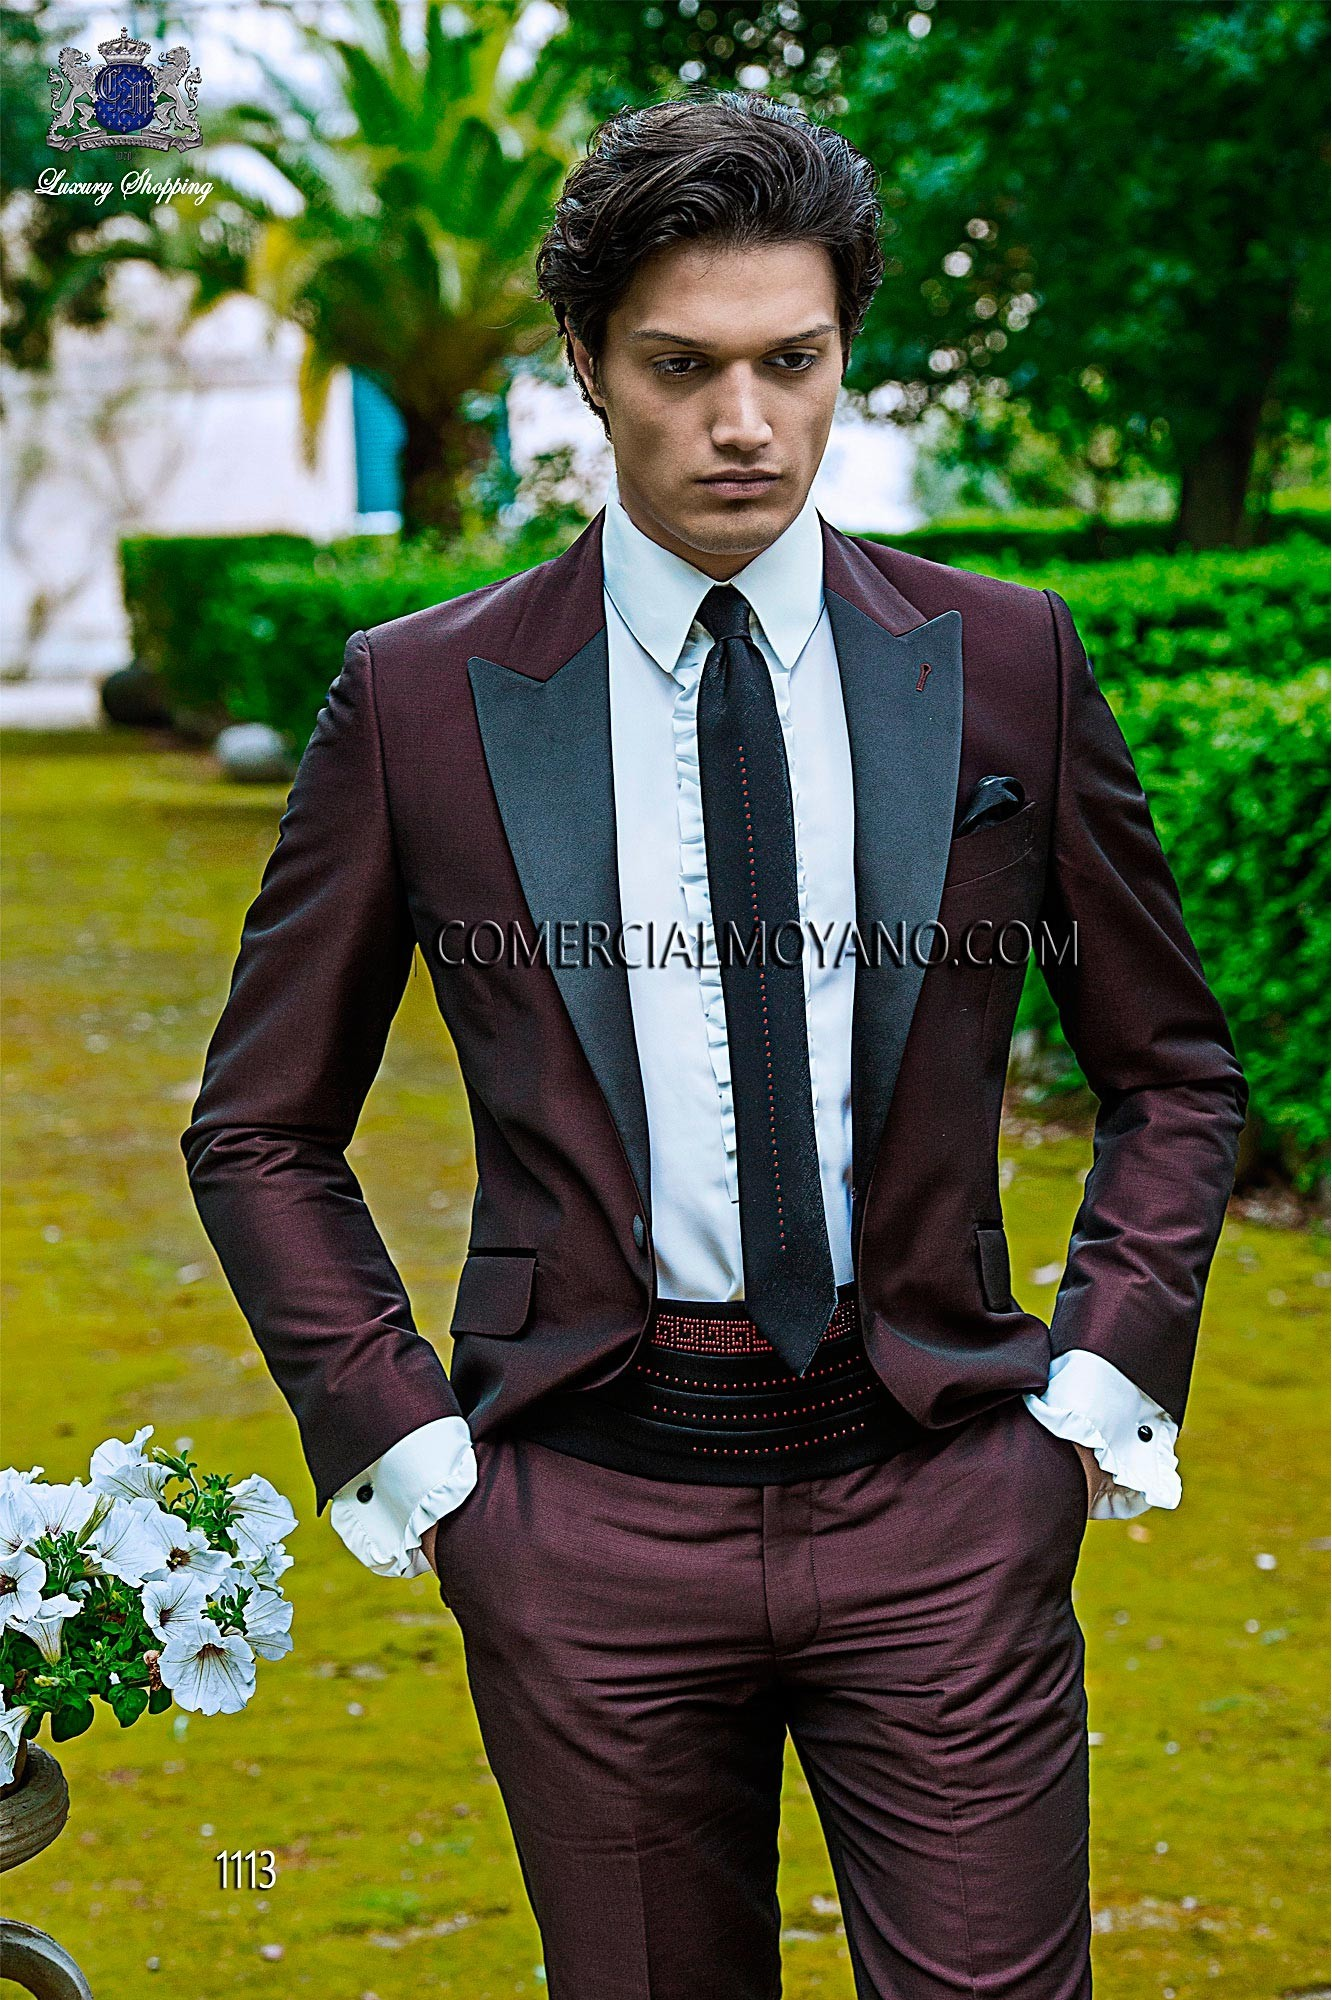 Fashion burgundy men wedding suit model 1113 Ottavio Nuccio Gala